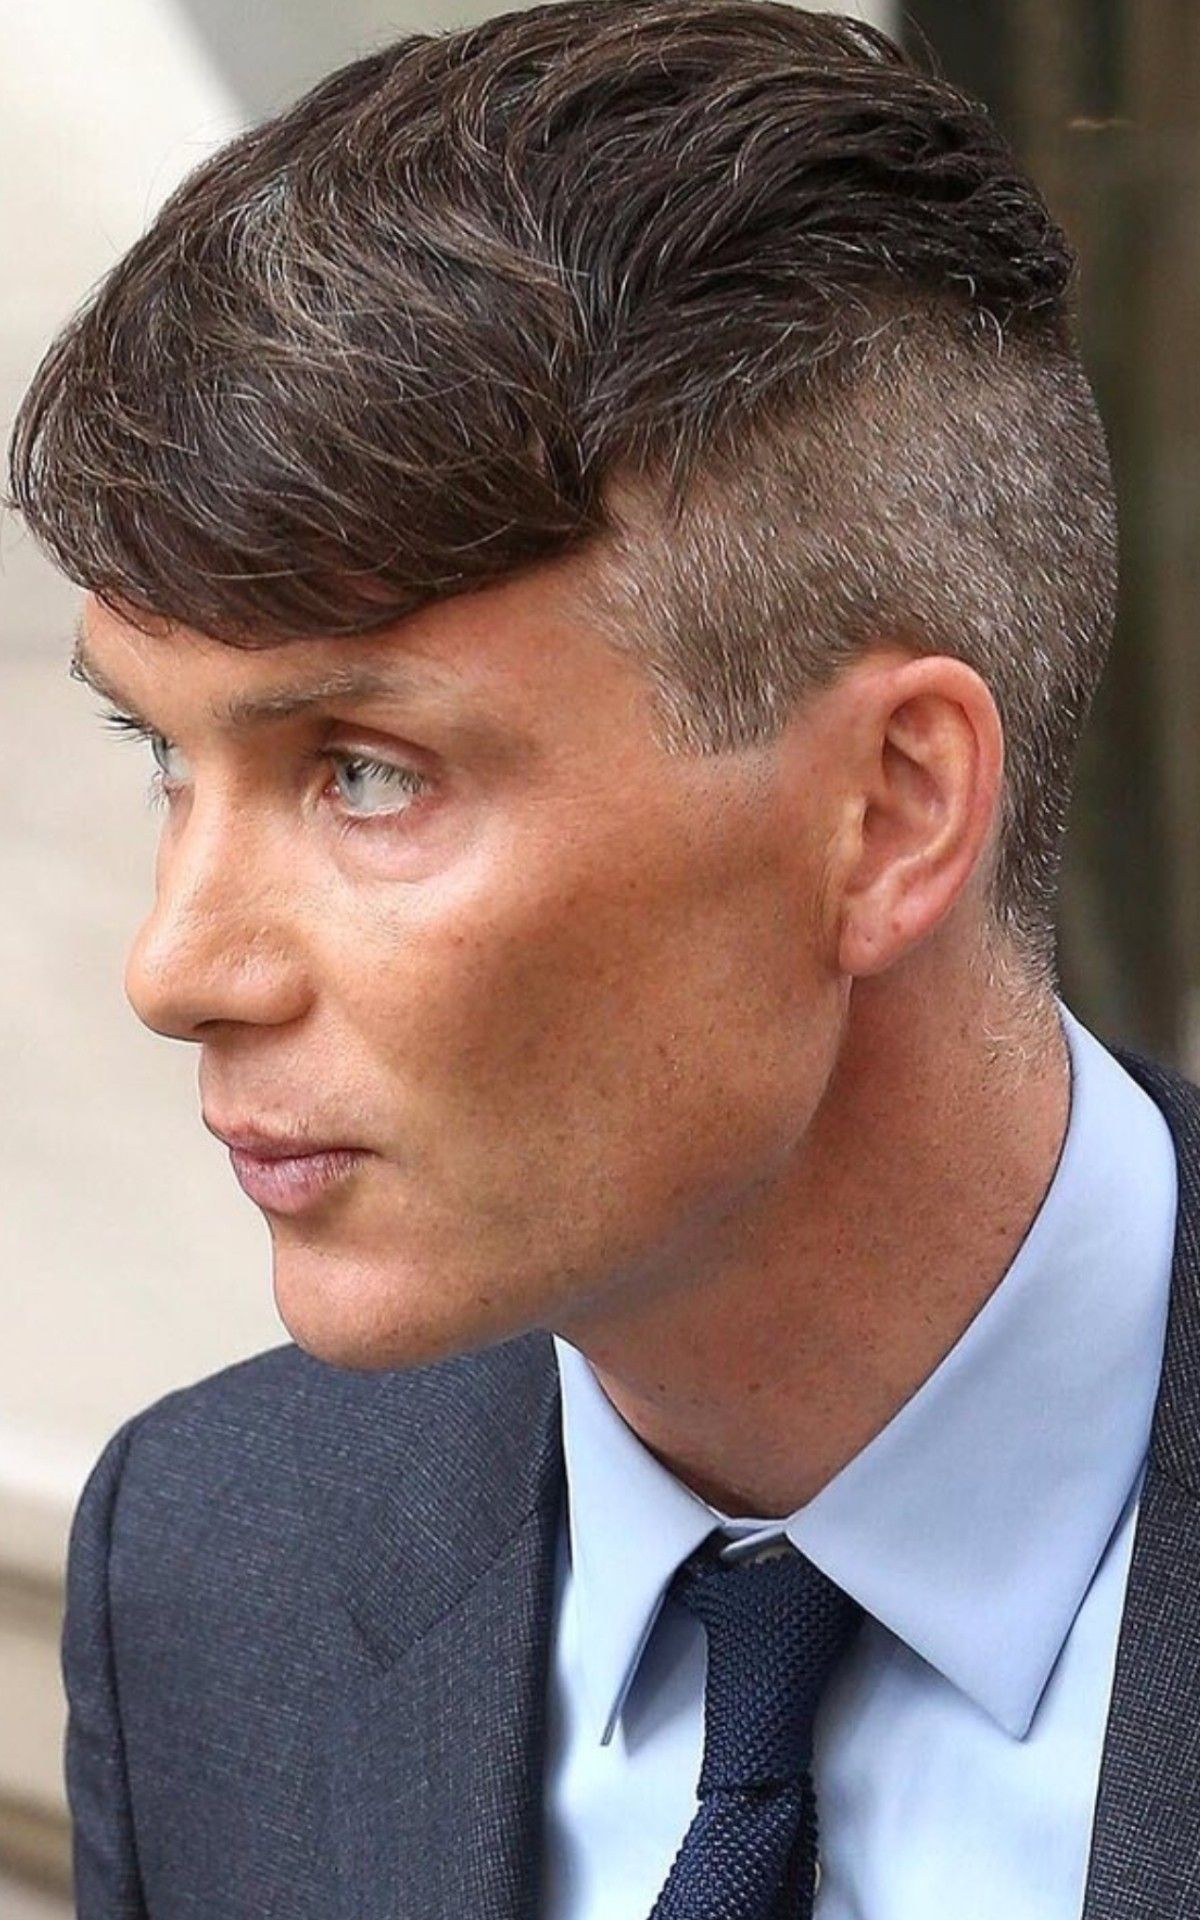 Cillian Murphy aka Mr Peaky Blinders 💙  Peaky blinders hair